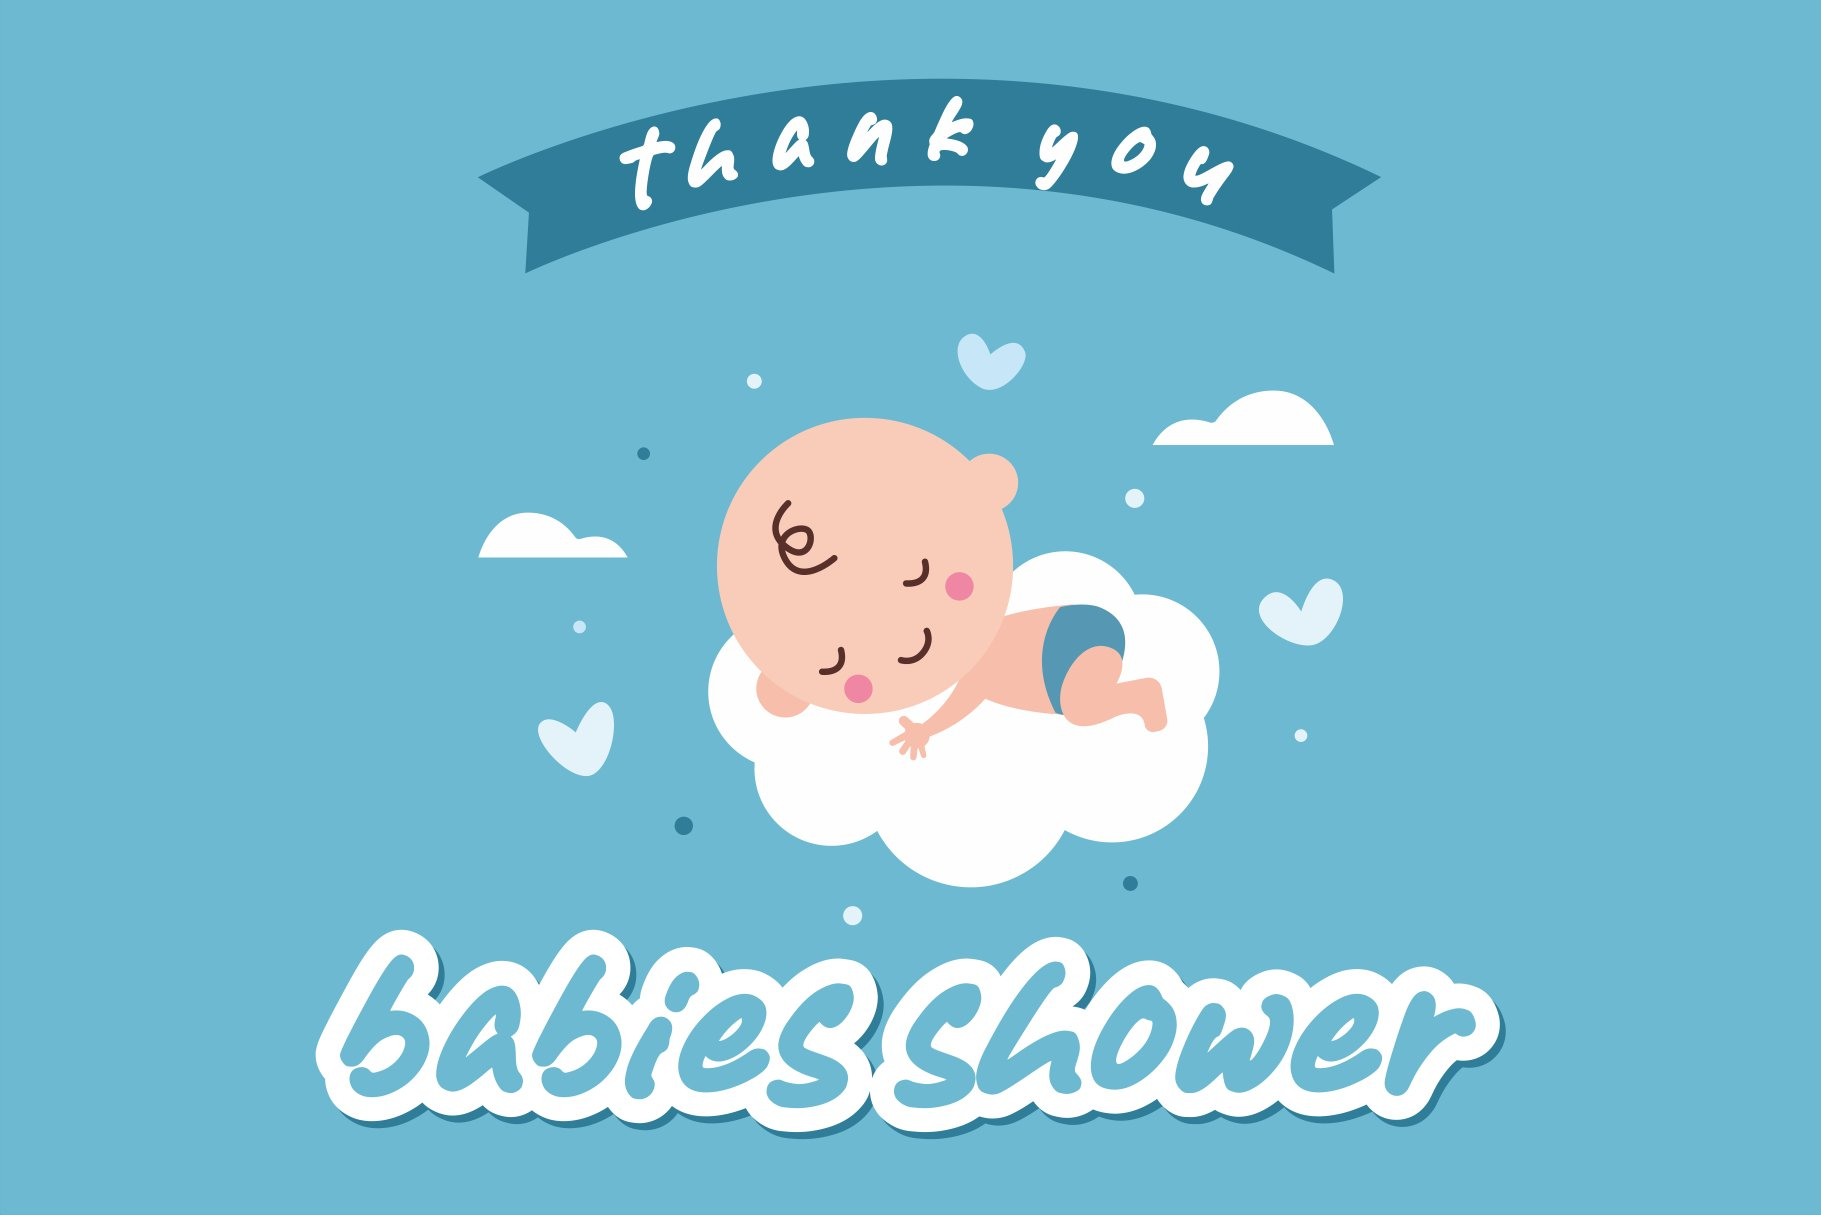 Babies Shower example image 7